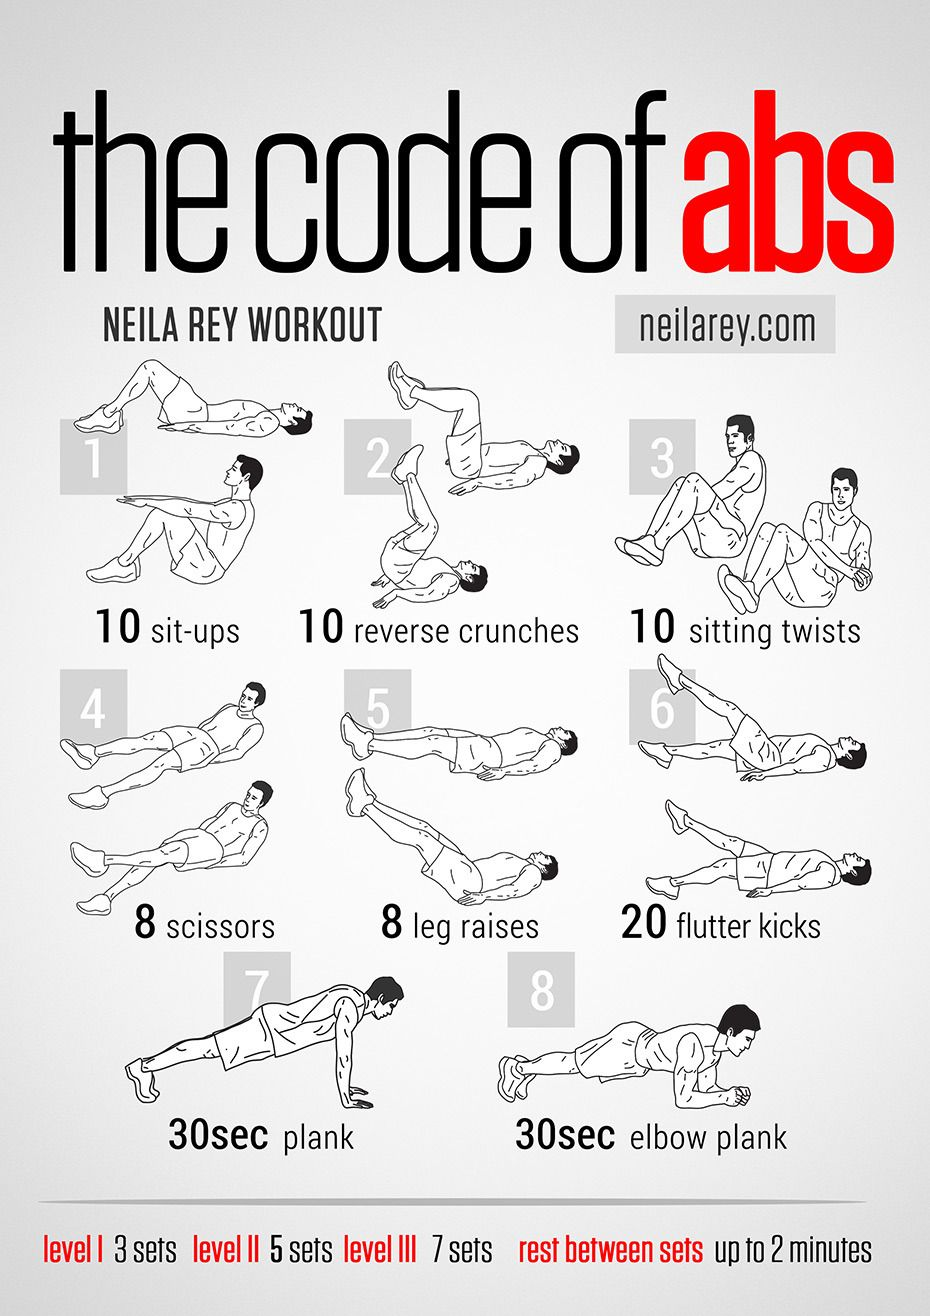 8 Simple Abs Building Exercises Neila rey workout, Abs